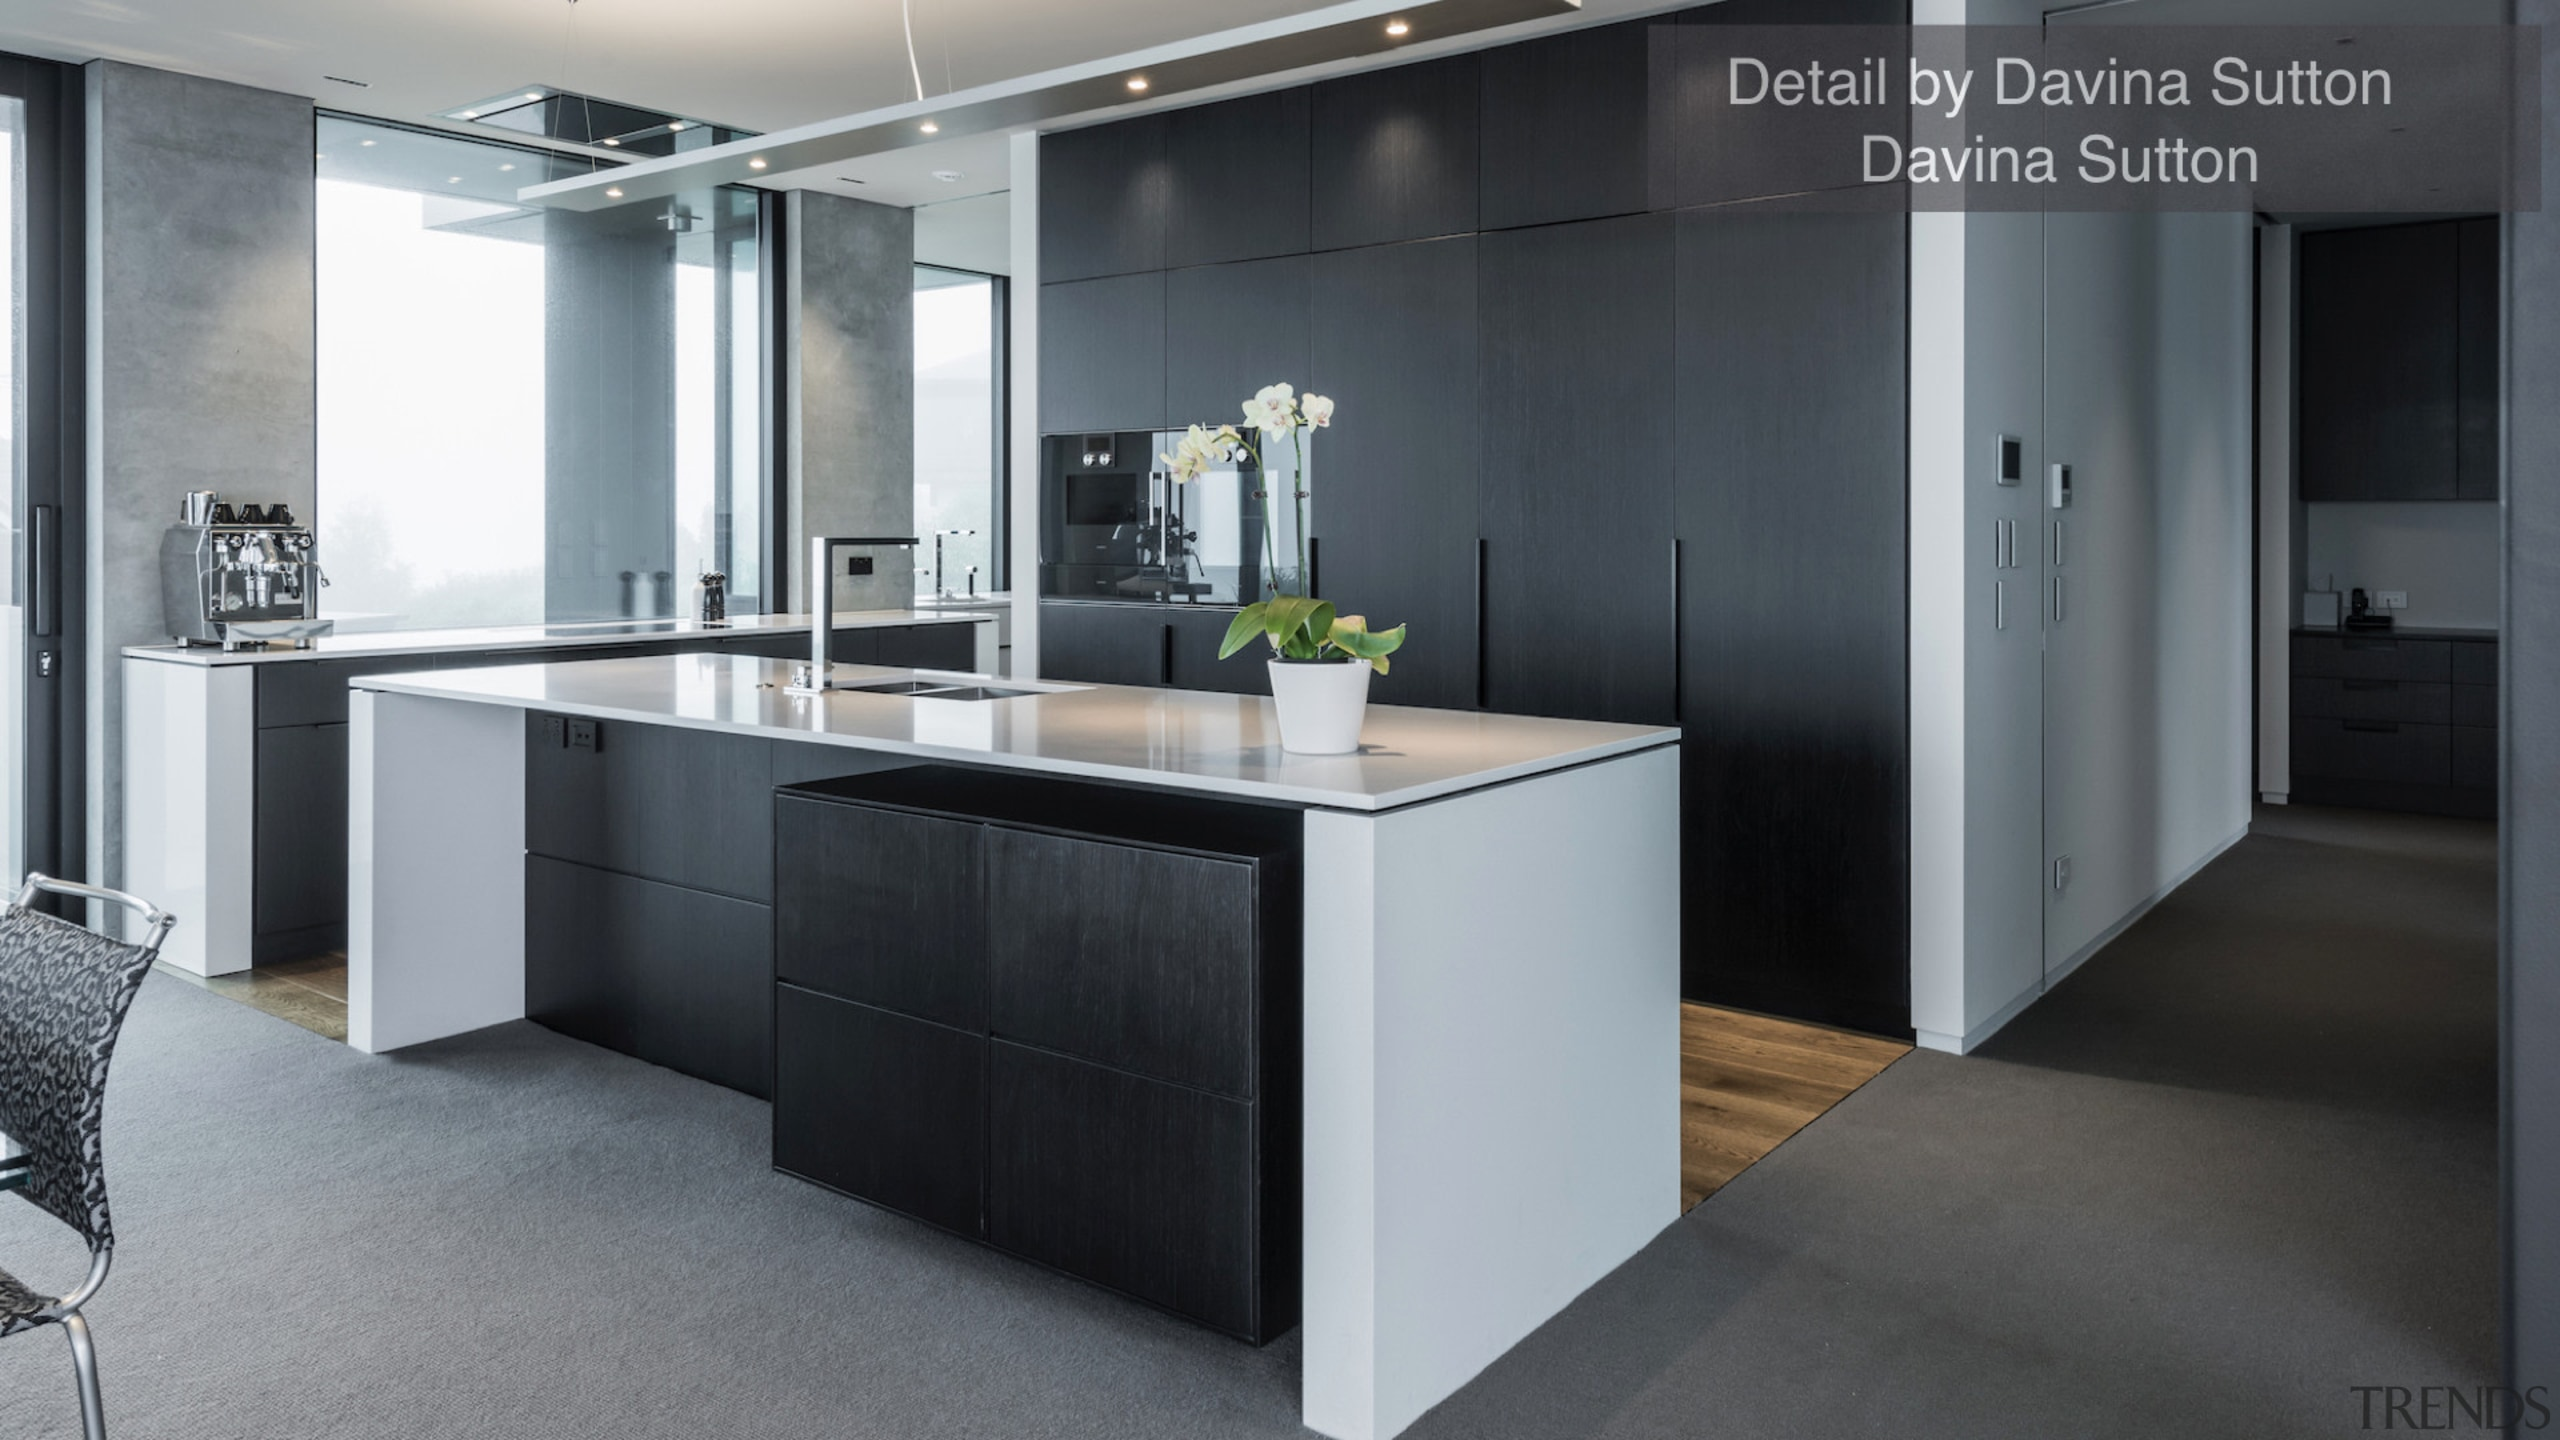 Detail by Davina Sutton – TIDA New Zealand cabinetry, countertop, floor, interior design, kitchen, gray, black